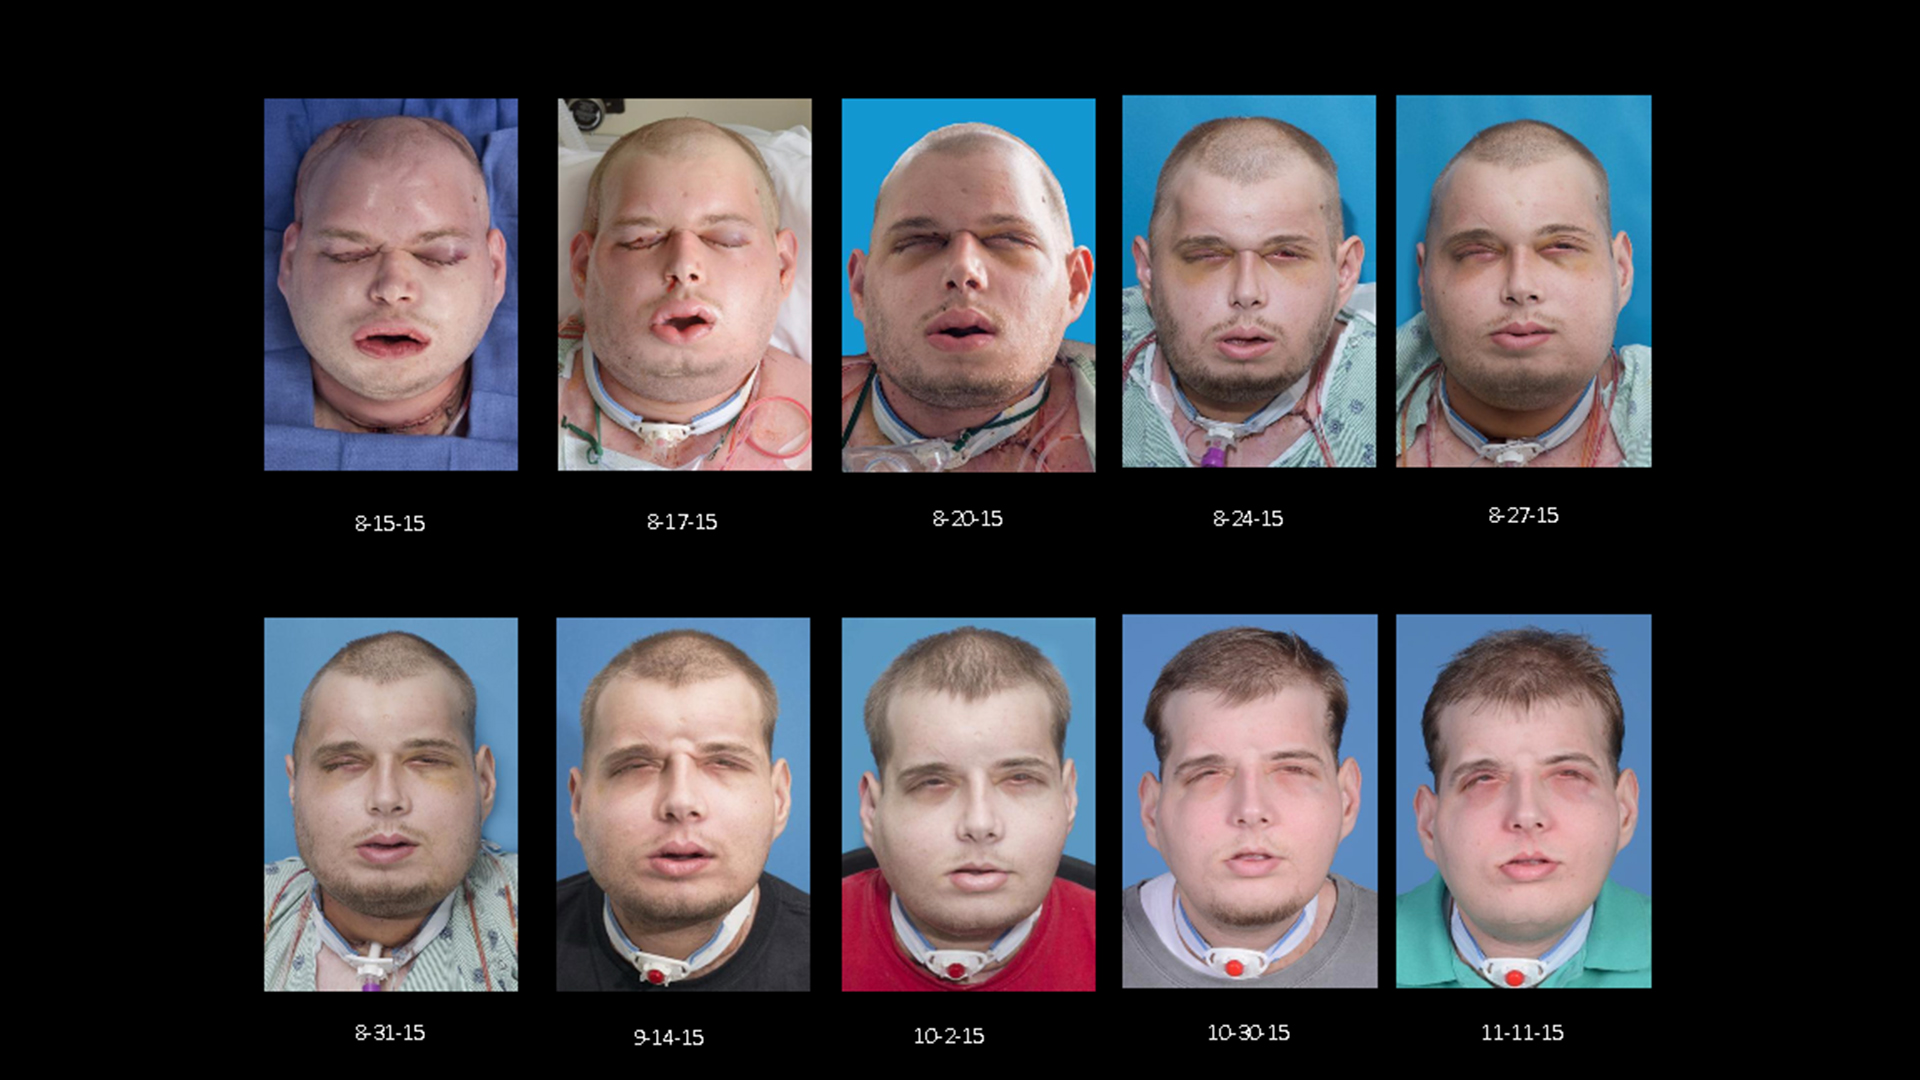 Firefighter patrick hardison adjusts to new face after transplant progress of face transplant recipient captured in time lapse voltagebd Gallery